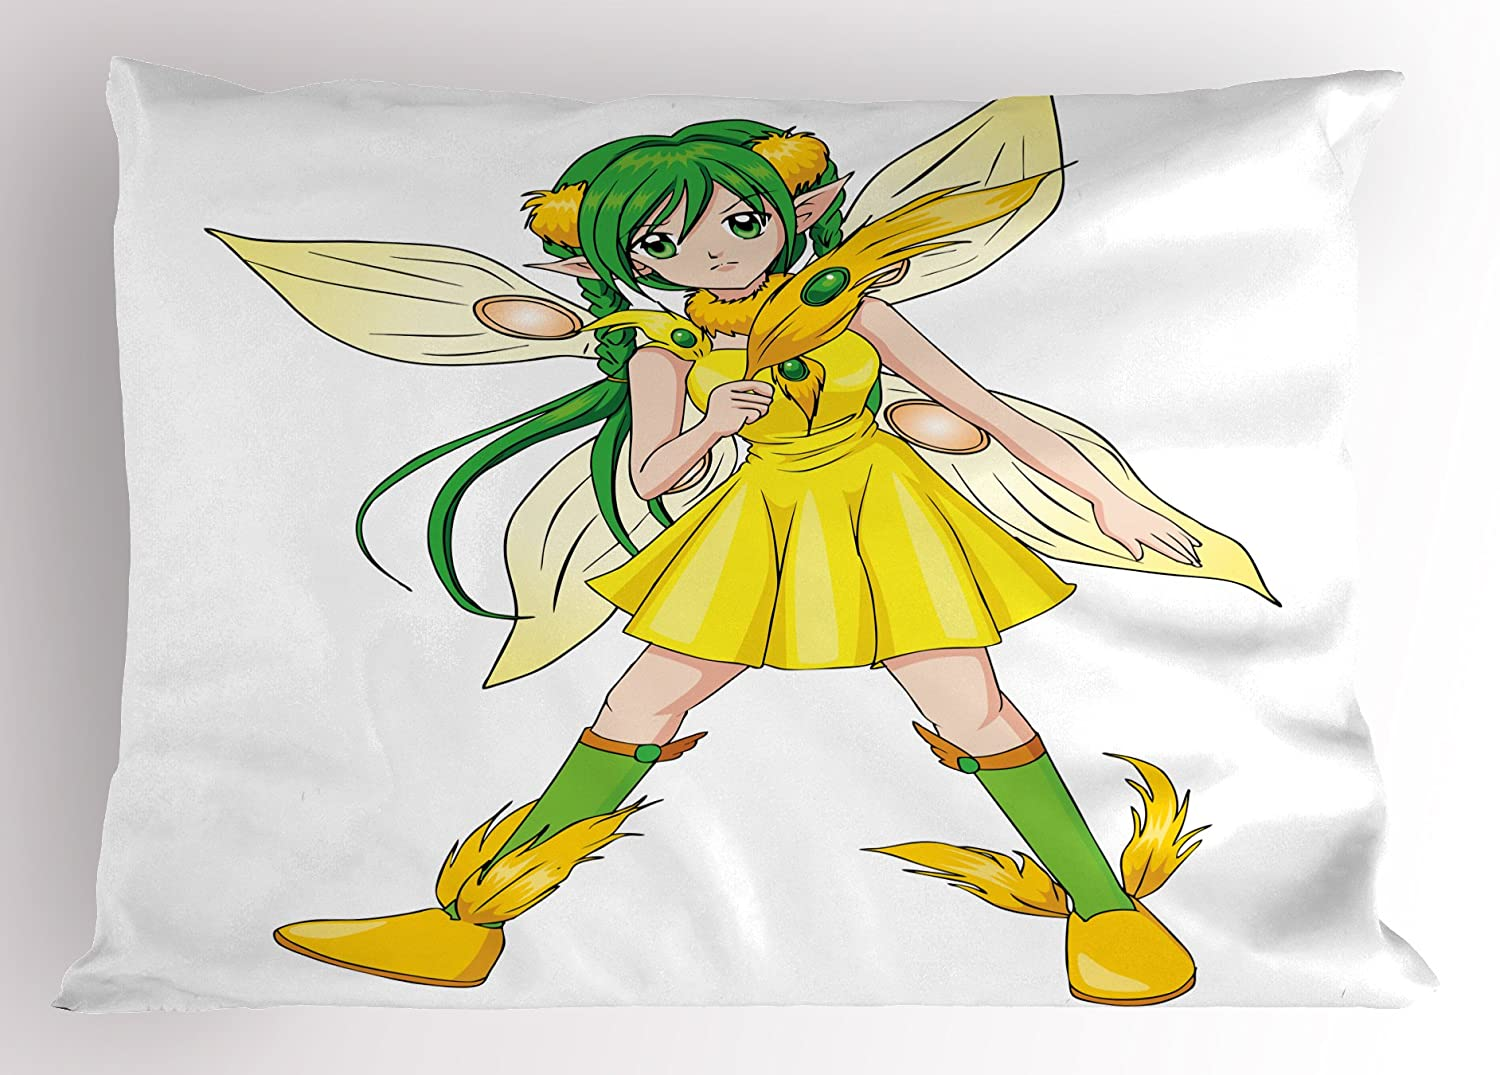 Ambesonne anime pillow sham fantasy illustration of a fairy girl in a yellow dress japanese manga decorative standard king size printed pillowcase